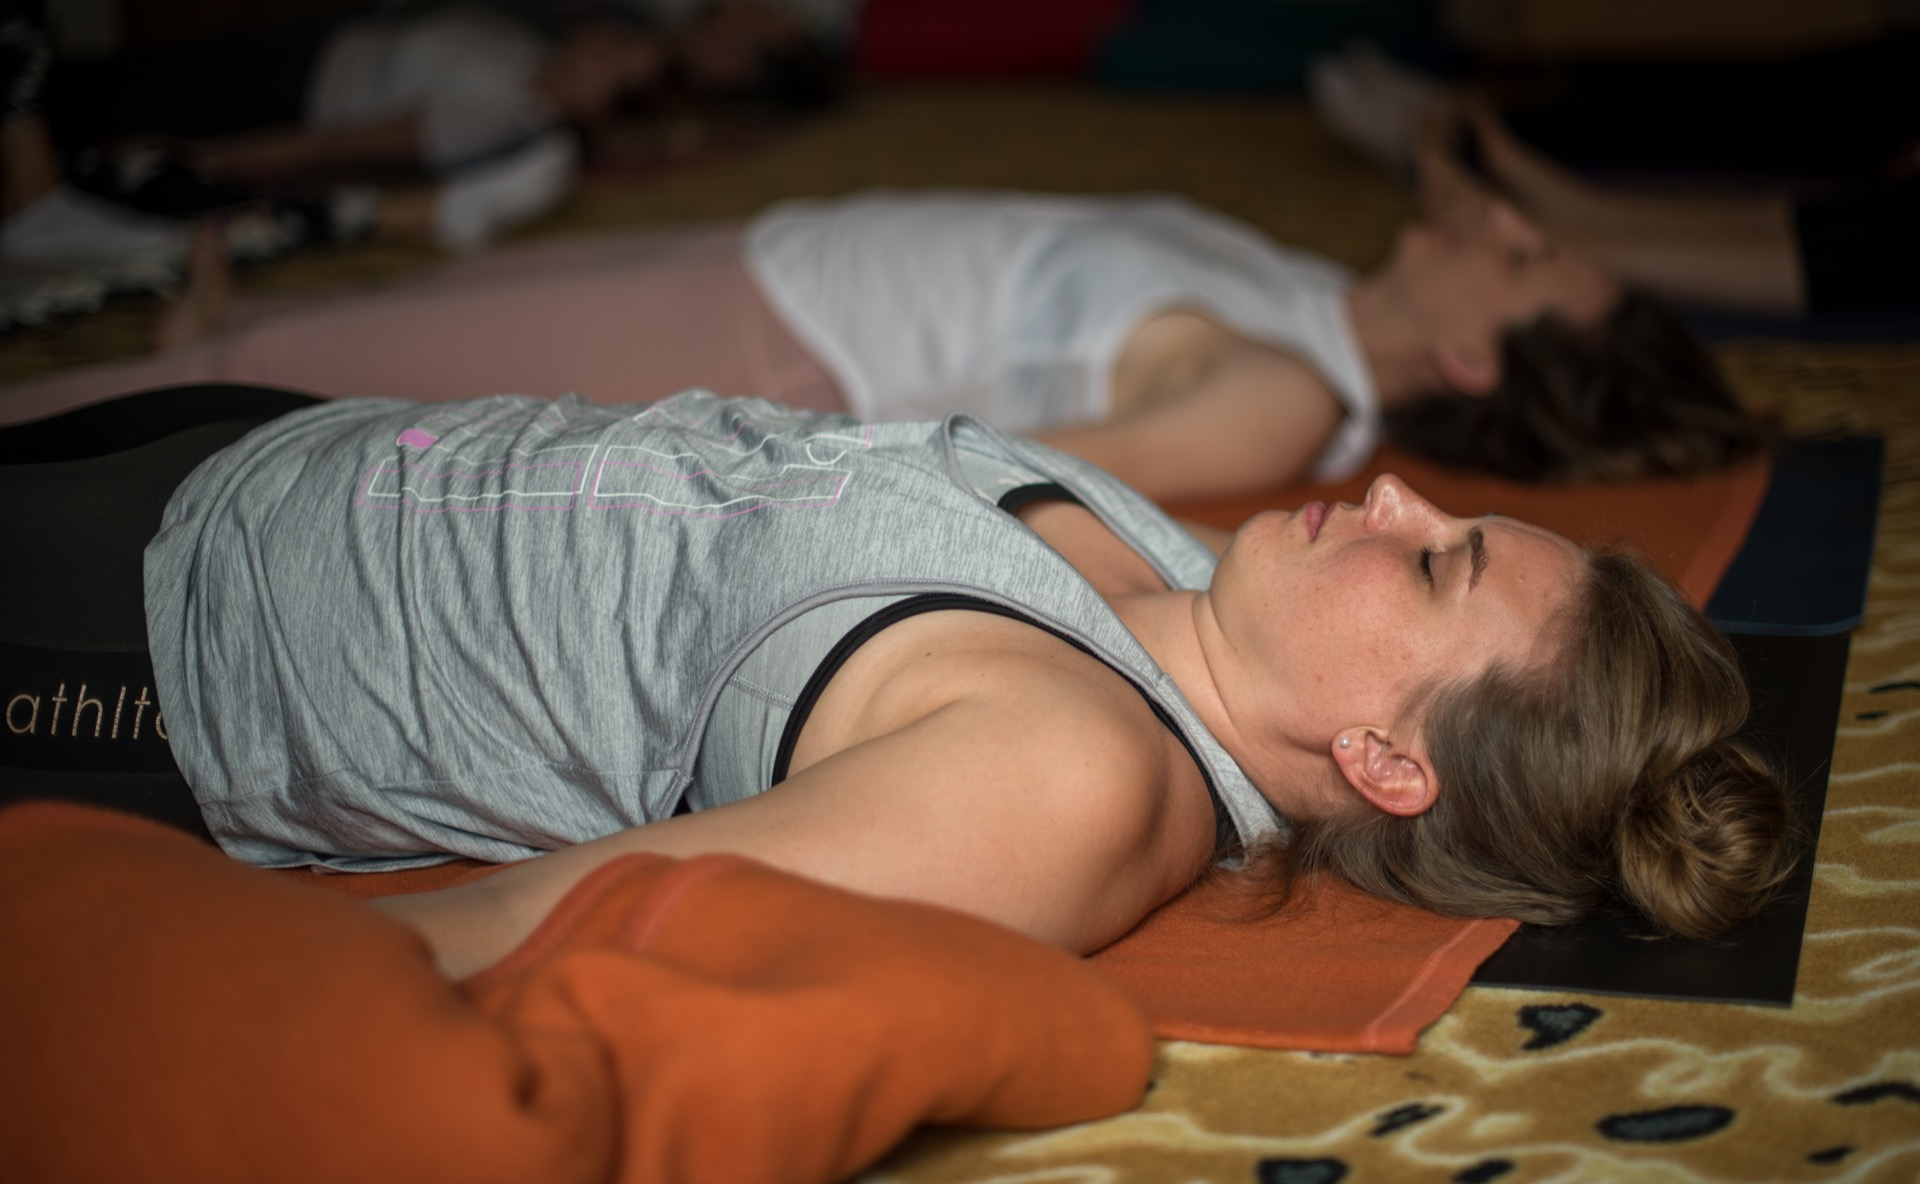 Hie-Kim-Friends-2019-Yoga-Retreat-Alina-Matis-Photography-176 - Hie Kim Yoga - Yoga Retreat - Yoga Workshops und Reisen